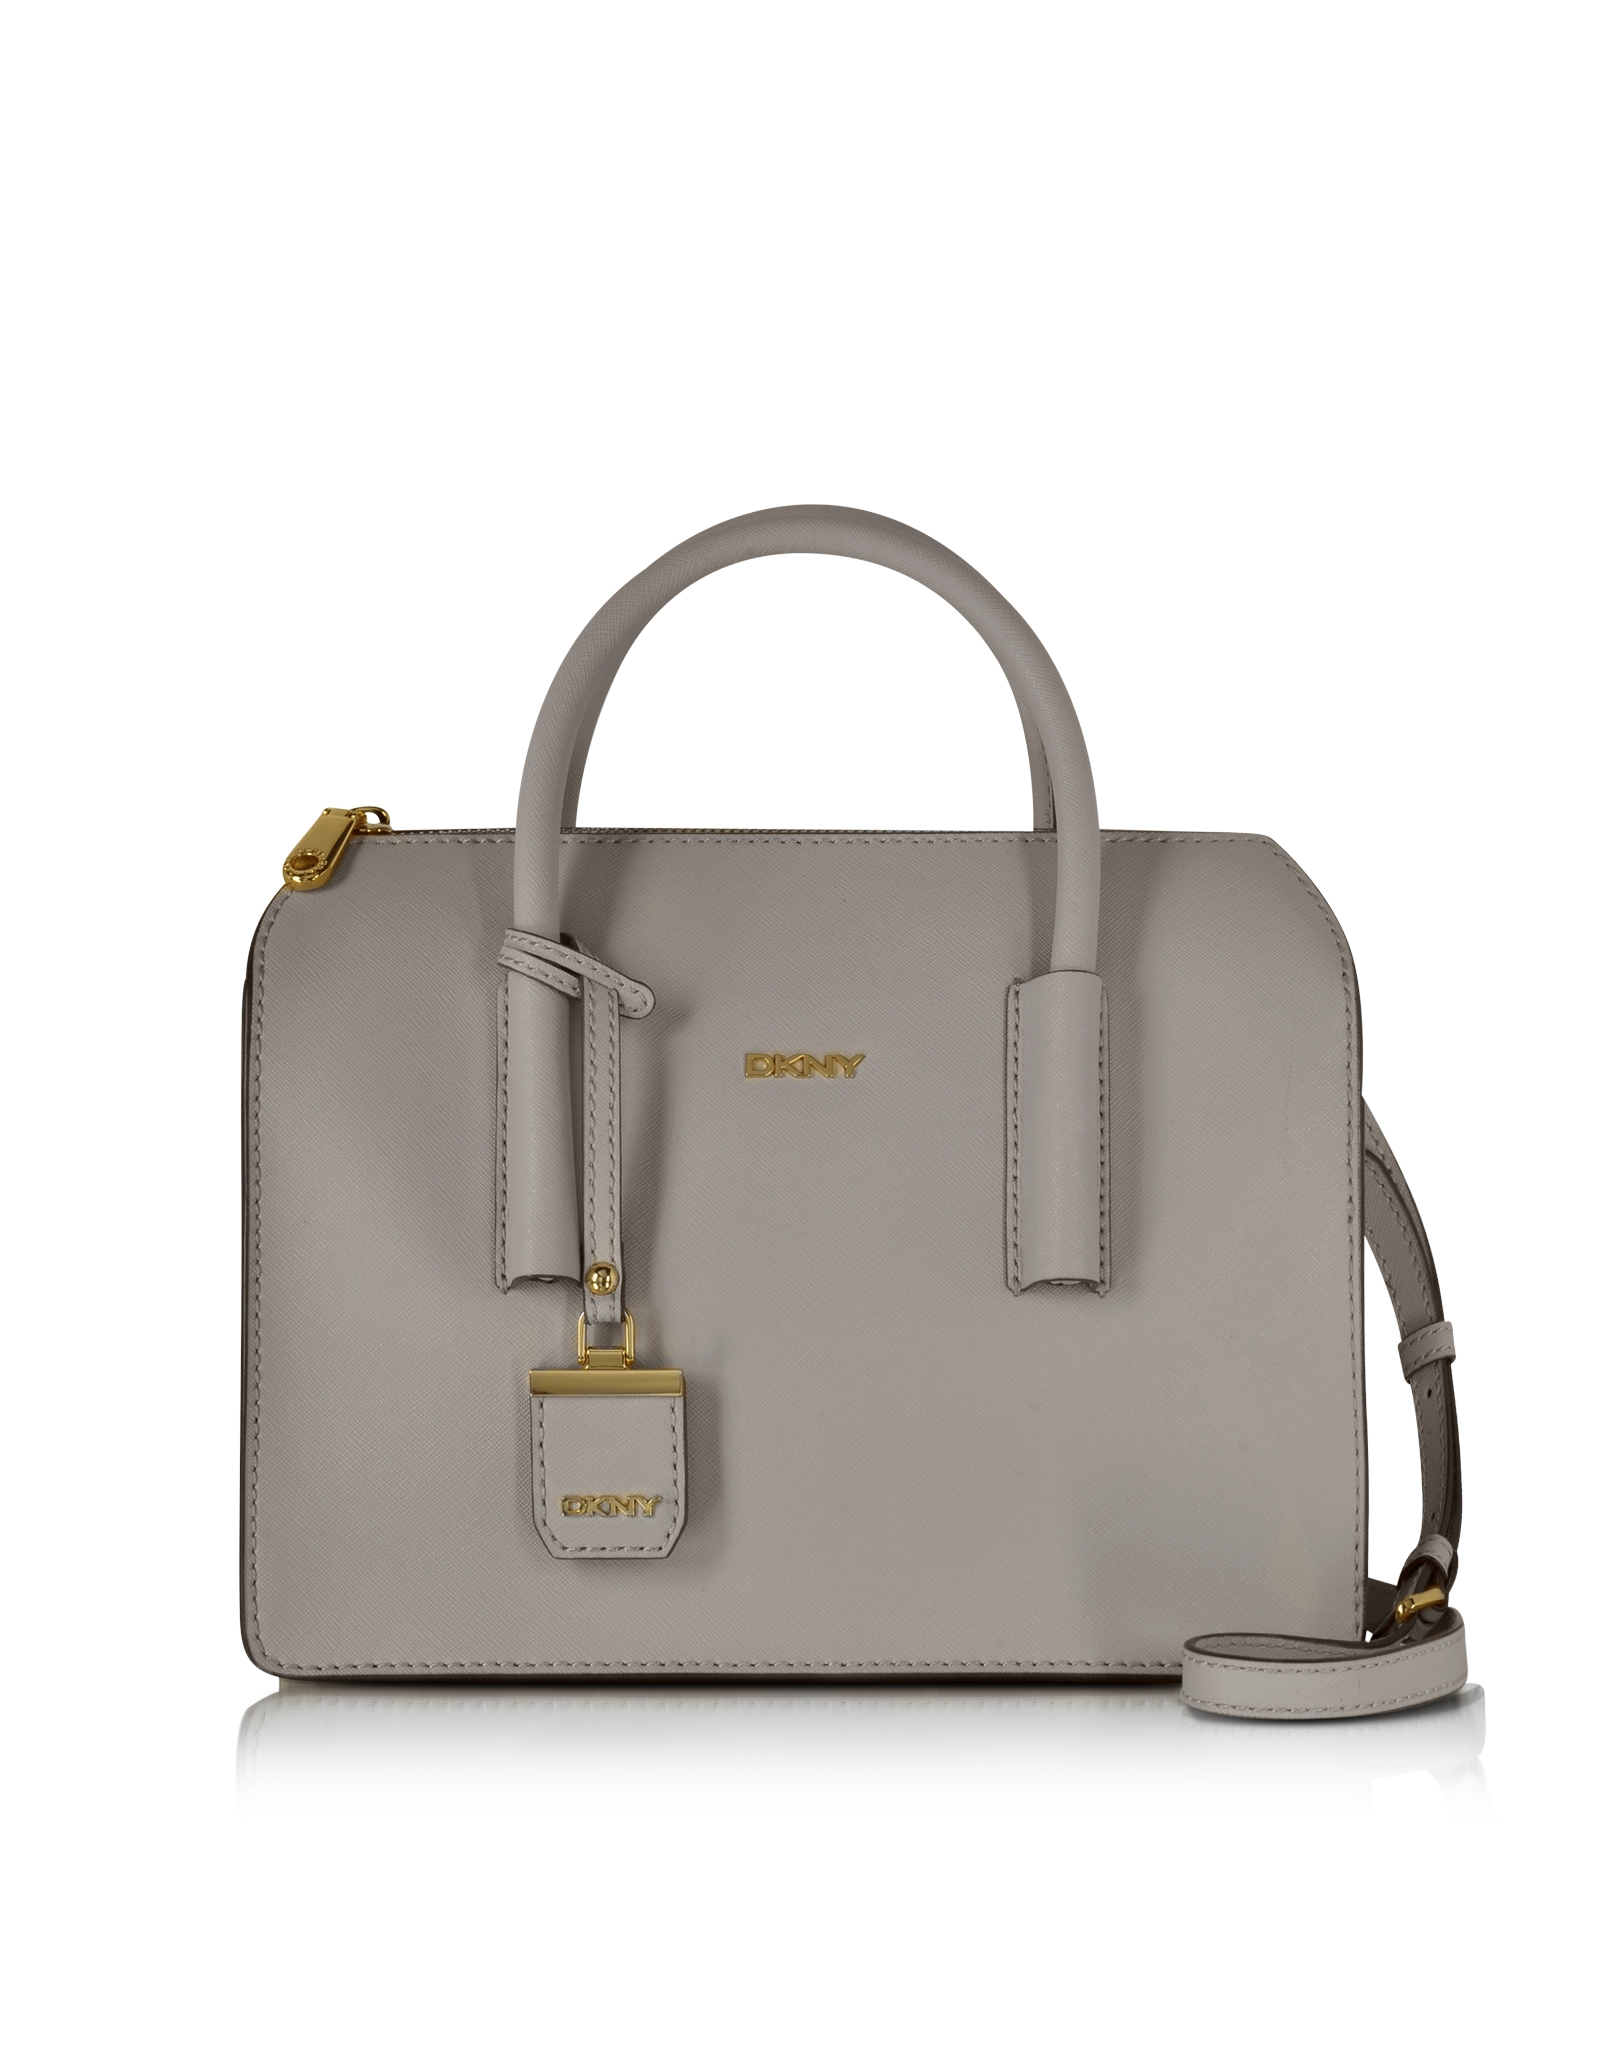 Dkny Bryant Park Grey Saffiano Leather Satchel in Gray | Lyst